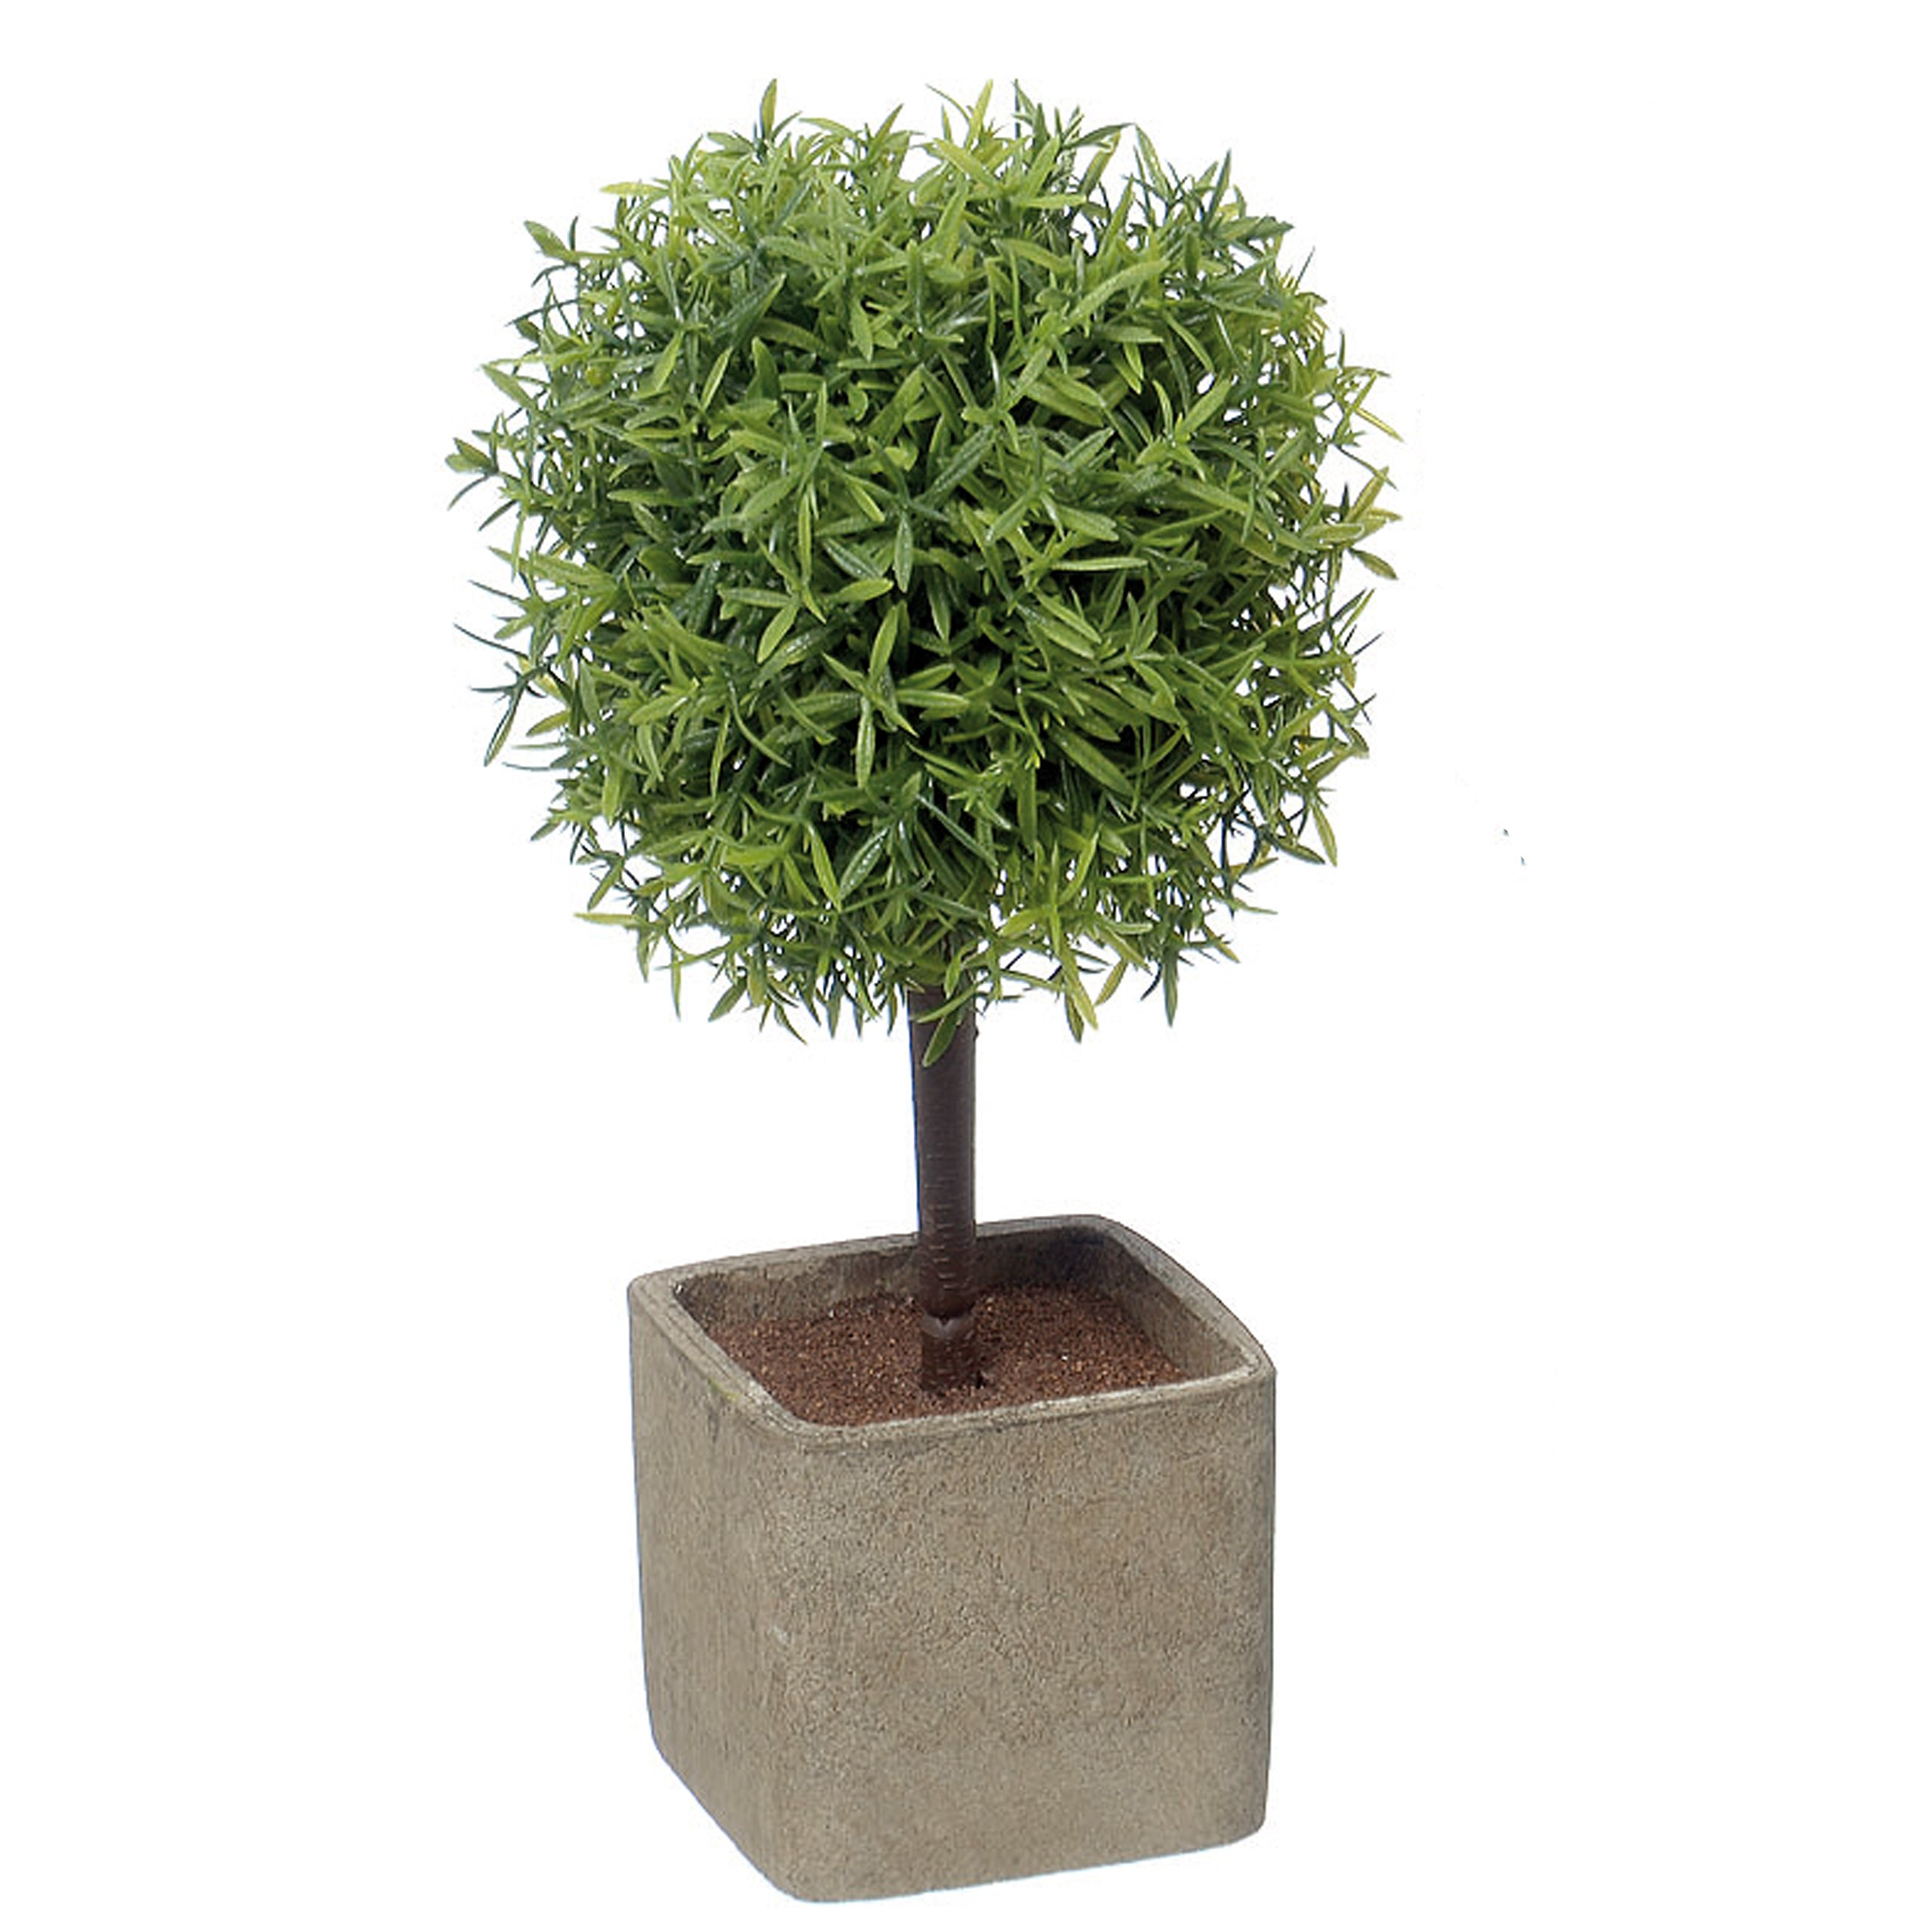 Whole House Worlds The Realistic Mini Faux Potted Grassy Ball Topiary Tree, Gray Stone Finished Planter, 10 1/4 Inches Tall, By by Whole House Worlds